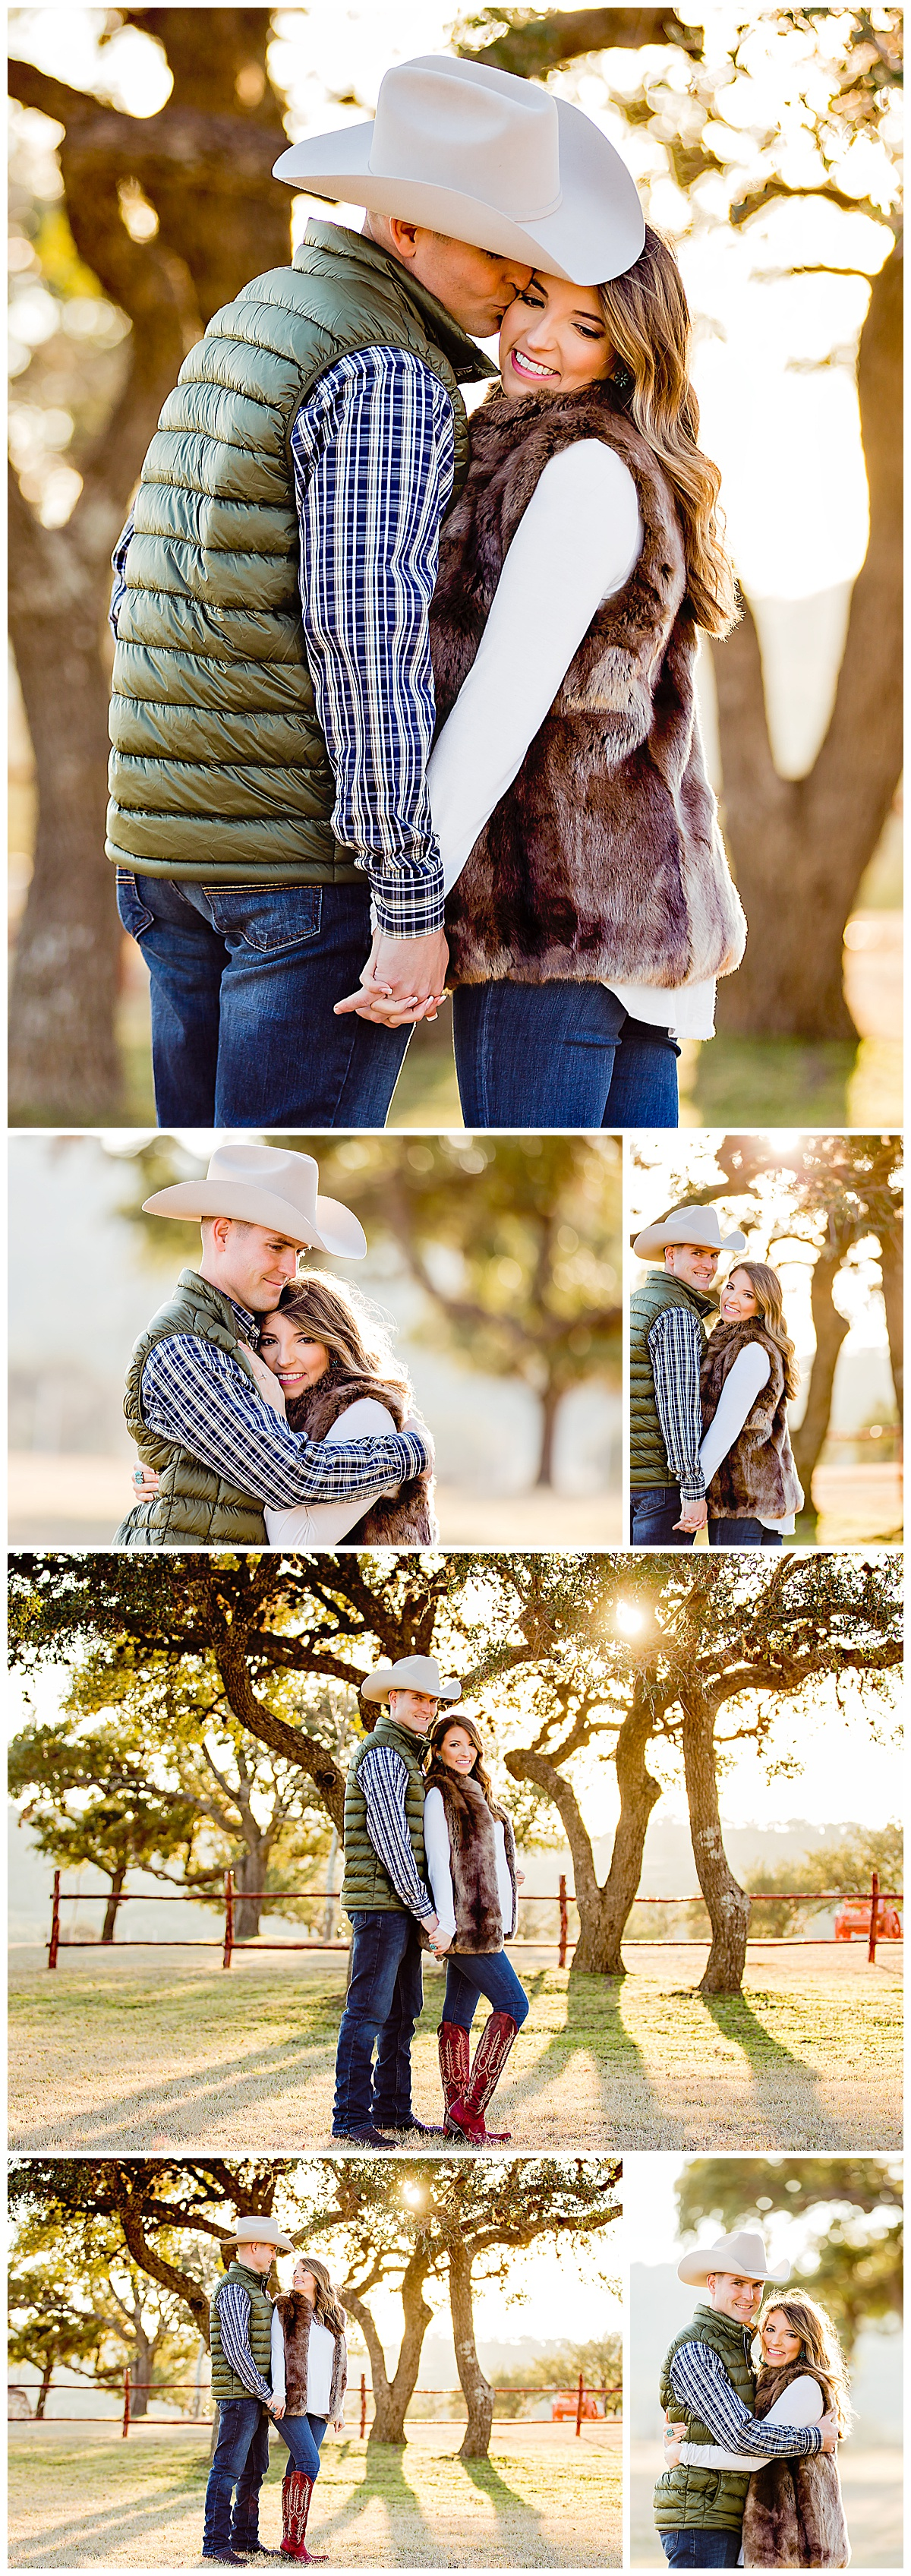 South-Texas-Wedding-Photographer-Engagement-Photos-Happy-H-Ranch-Comfort-Texas-Sunset-Couples-Carly-Barton-Photography-Justin-Erica_0005.jpg